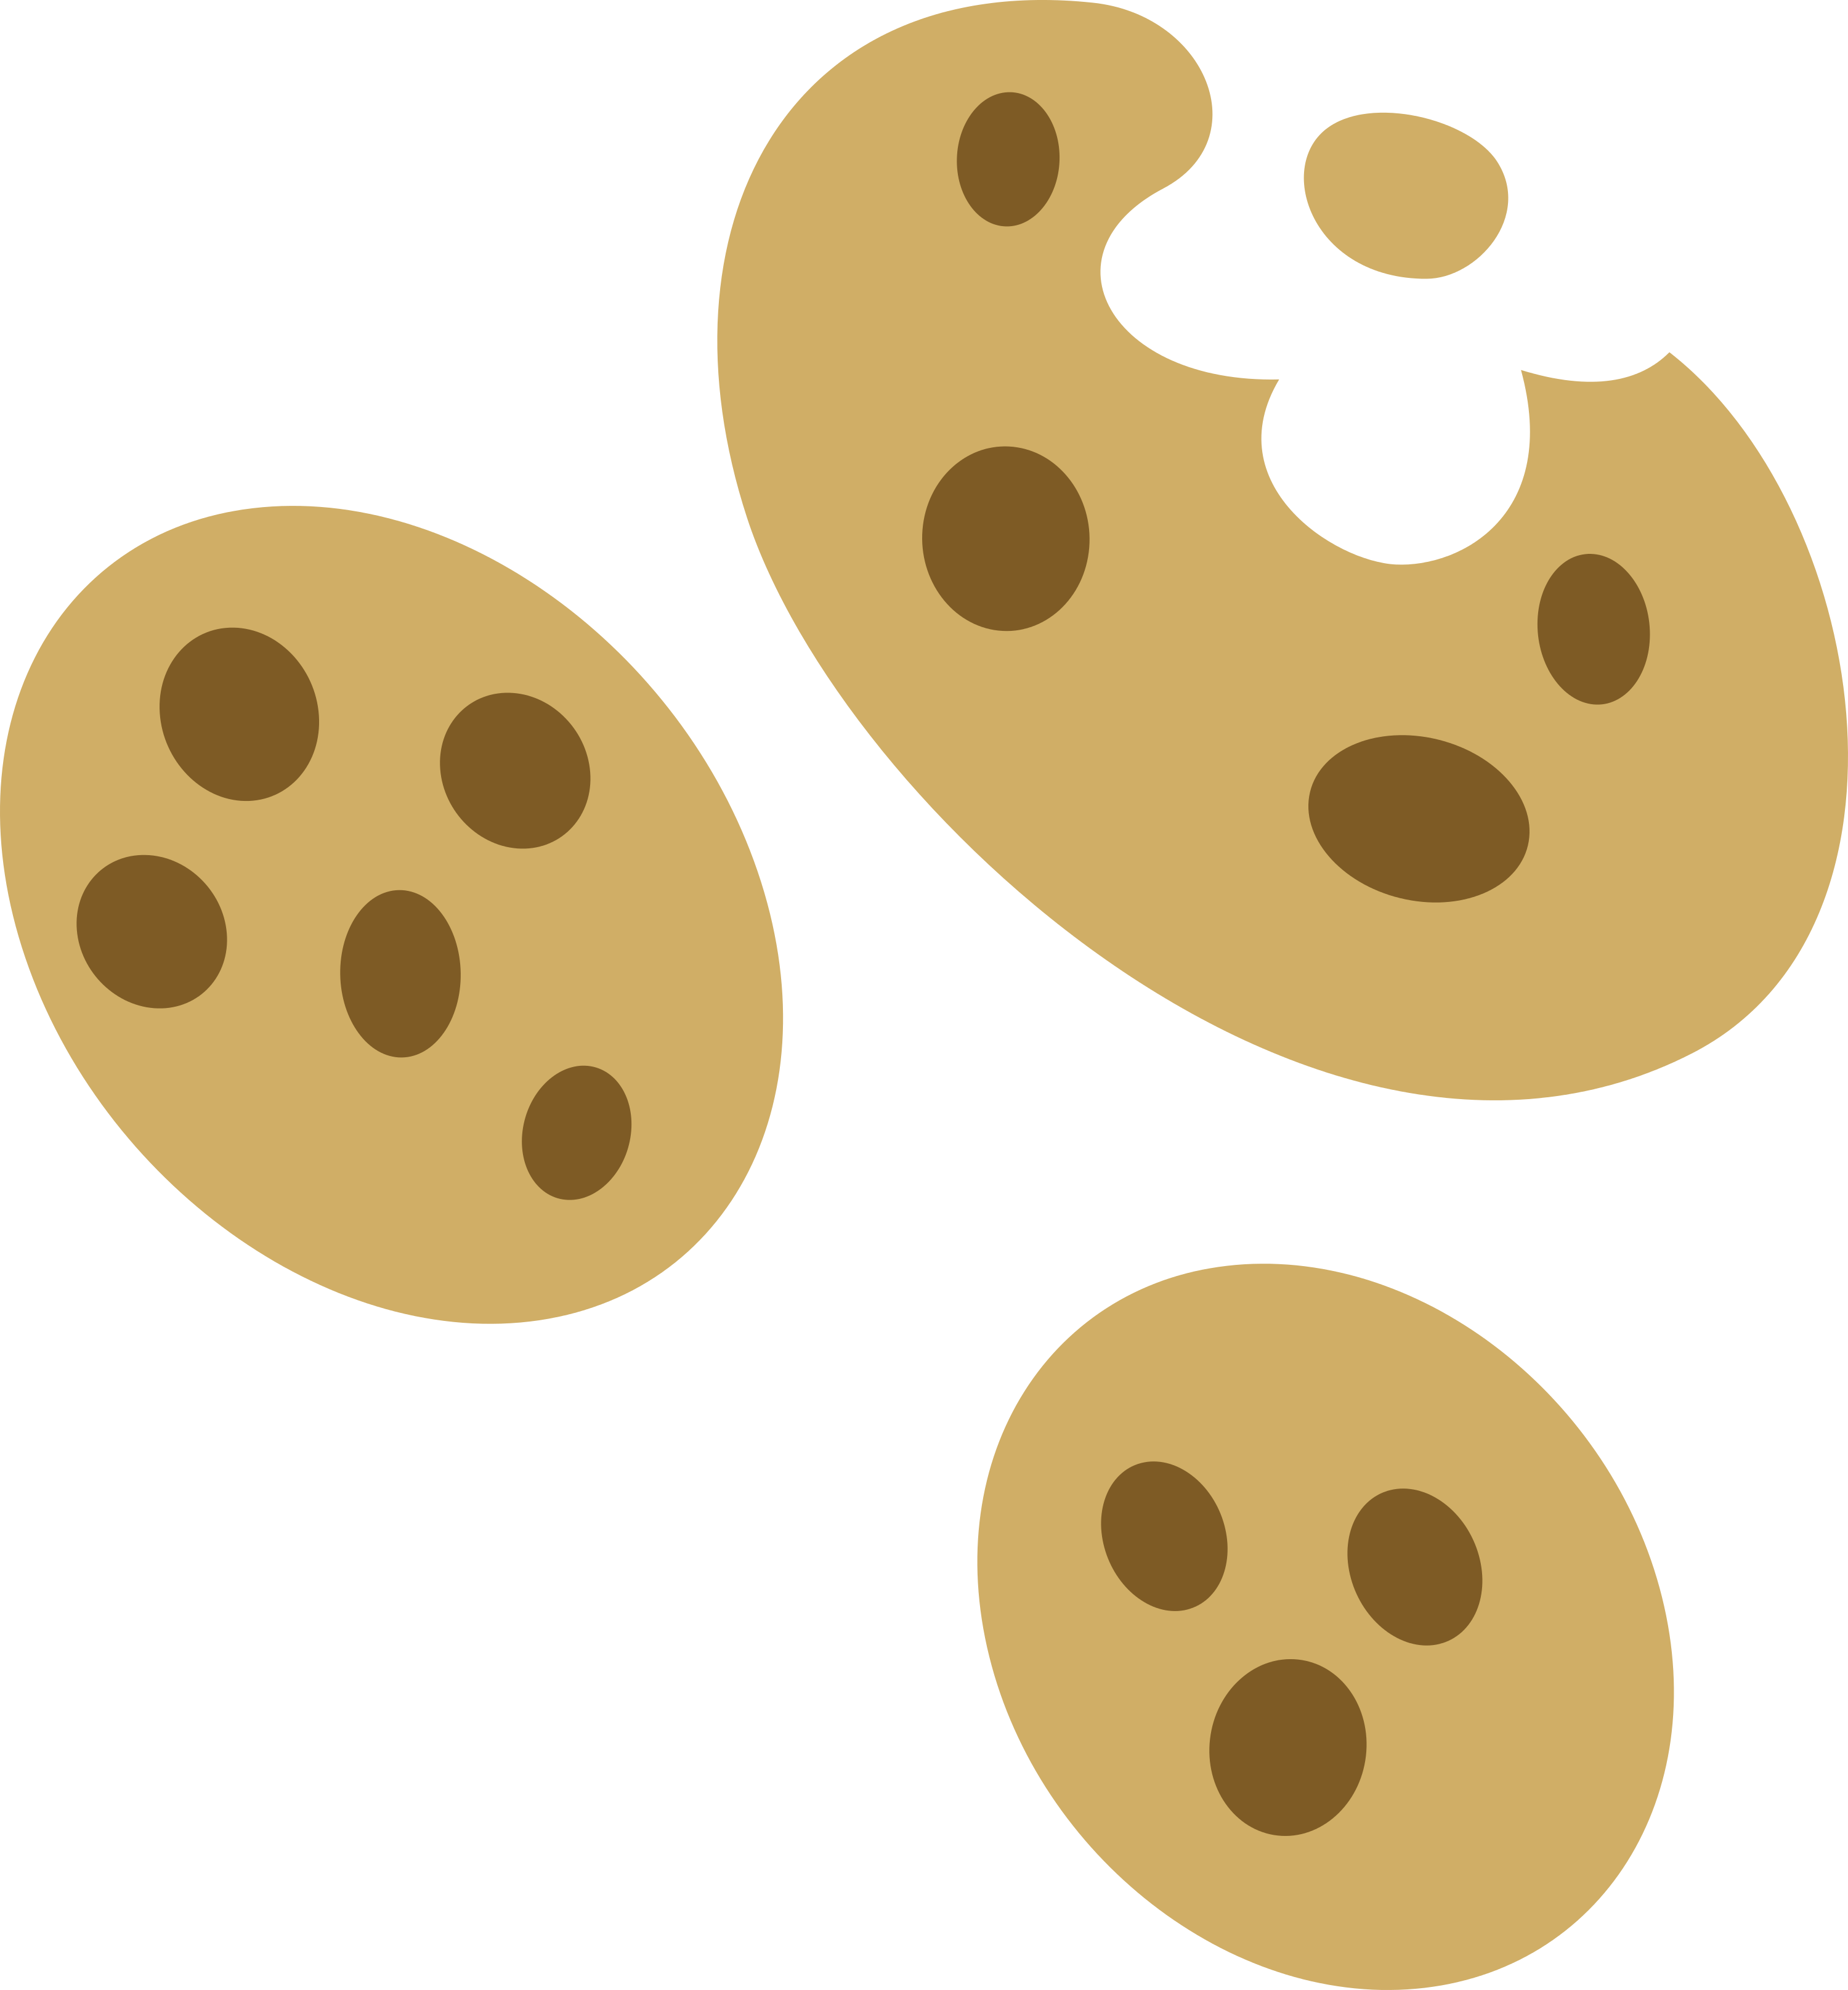 Cracker clipart circle. Sweet biscuit cm by